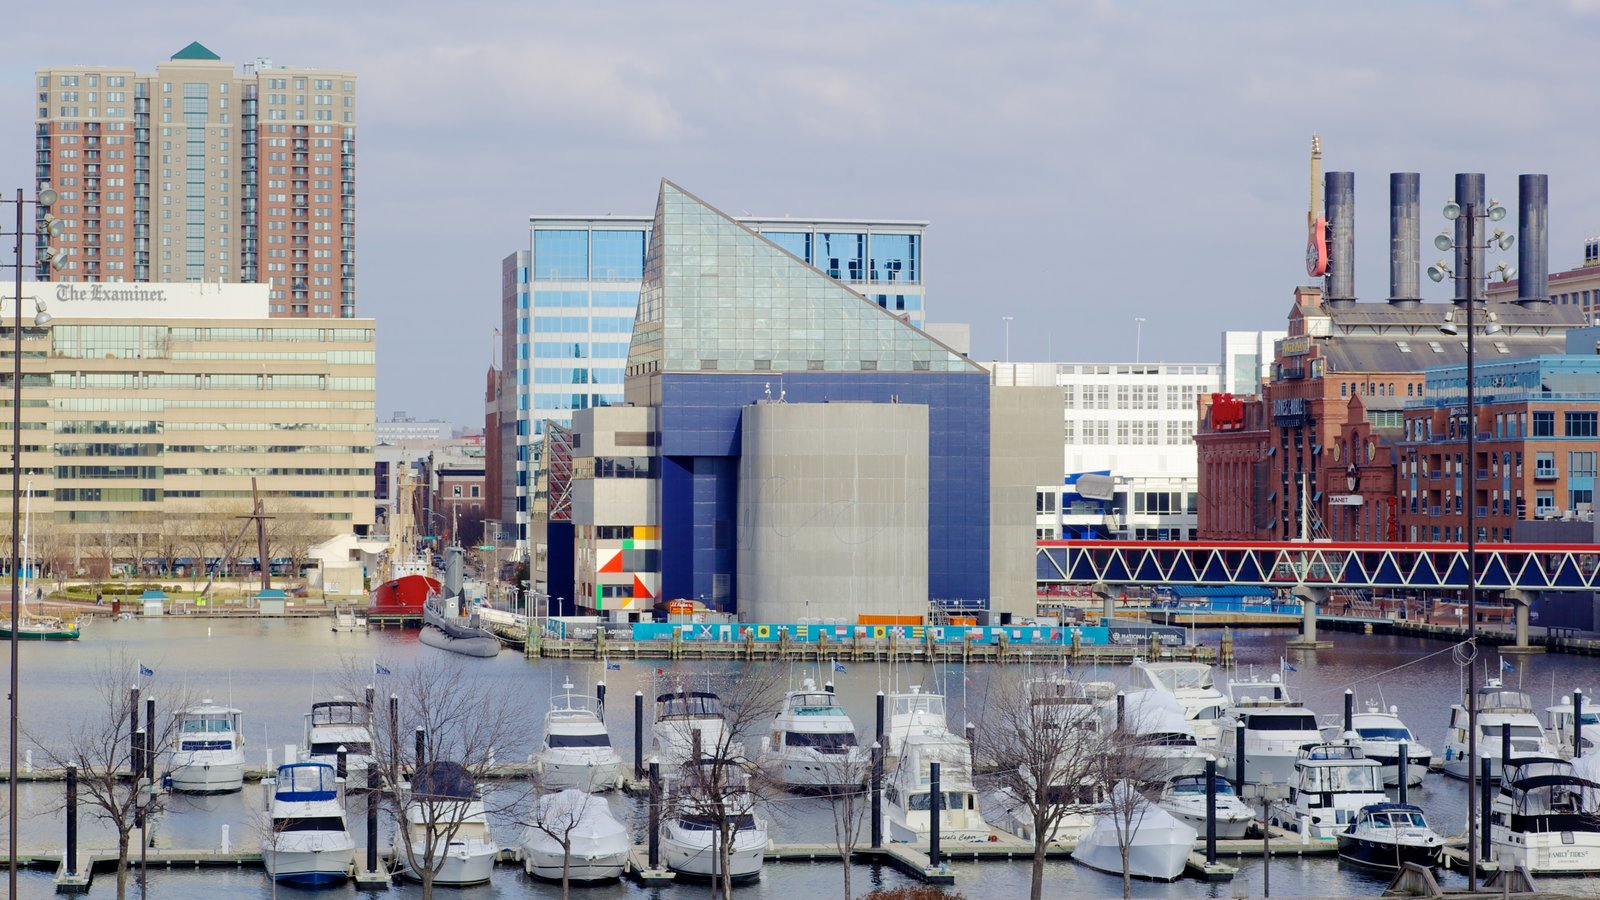 Baltimore Inner Harbor Marina showing a high rise building, boating and a bay or harbor